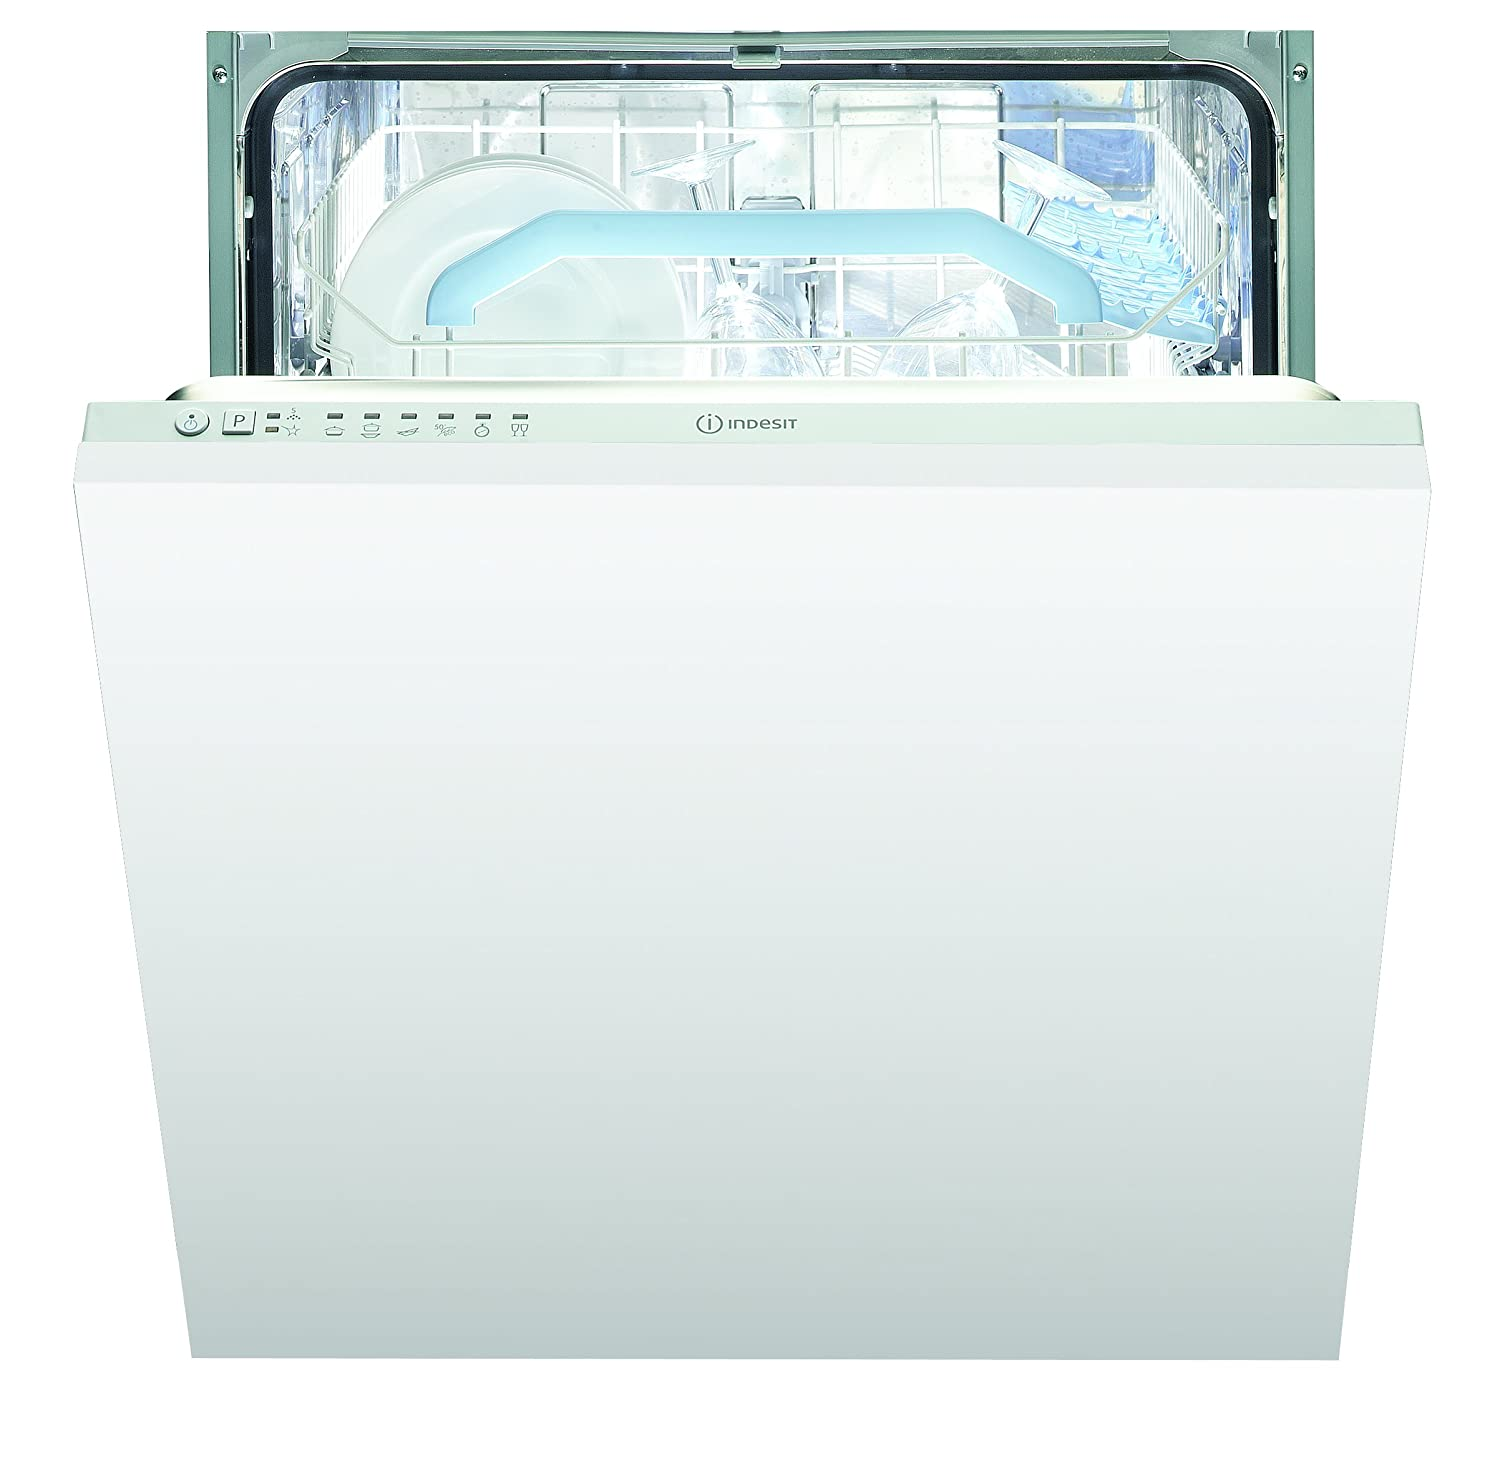 INDESIT DIF16B1 13 Place Fully Integrated Dishwasher with Quick Wash White